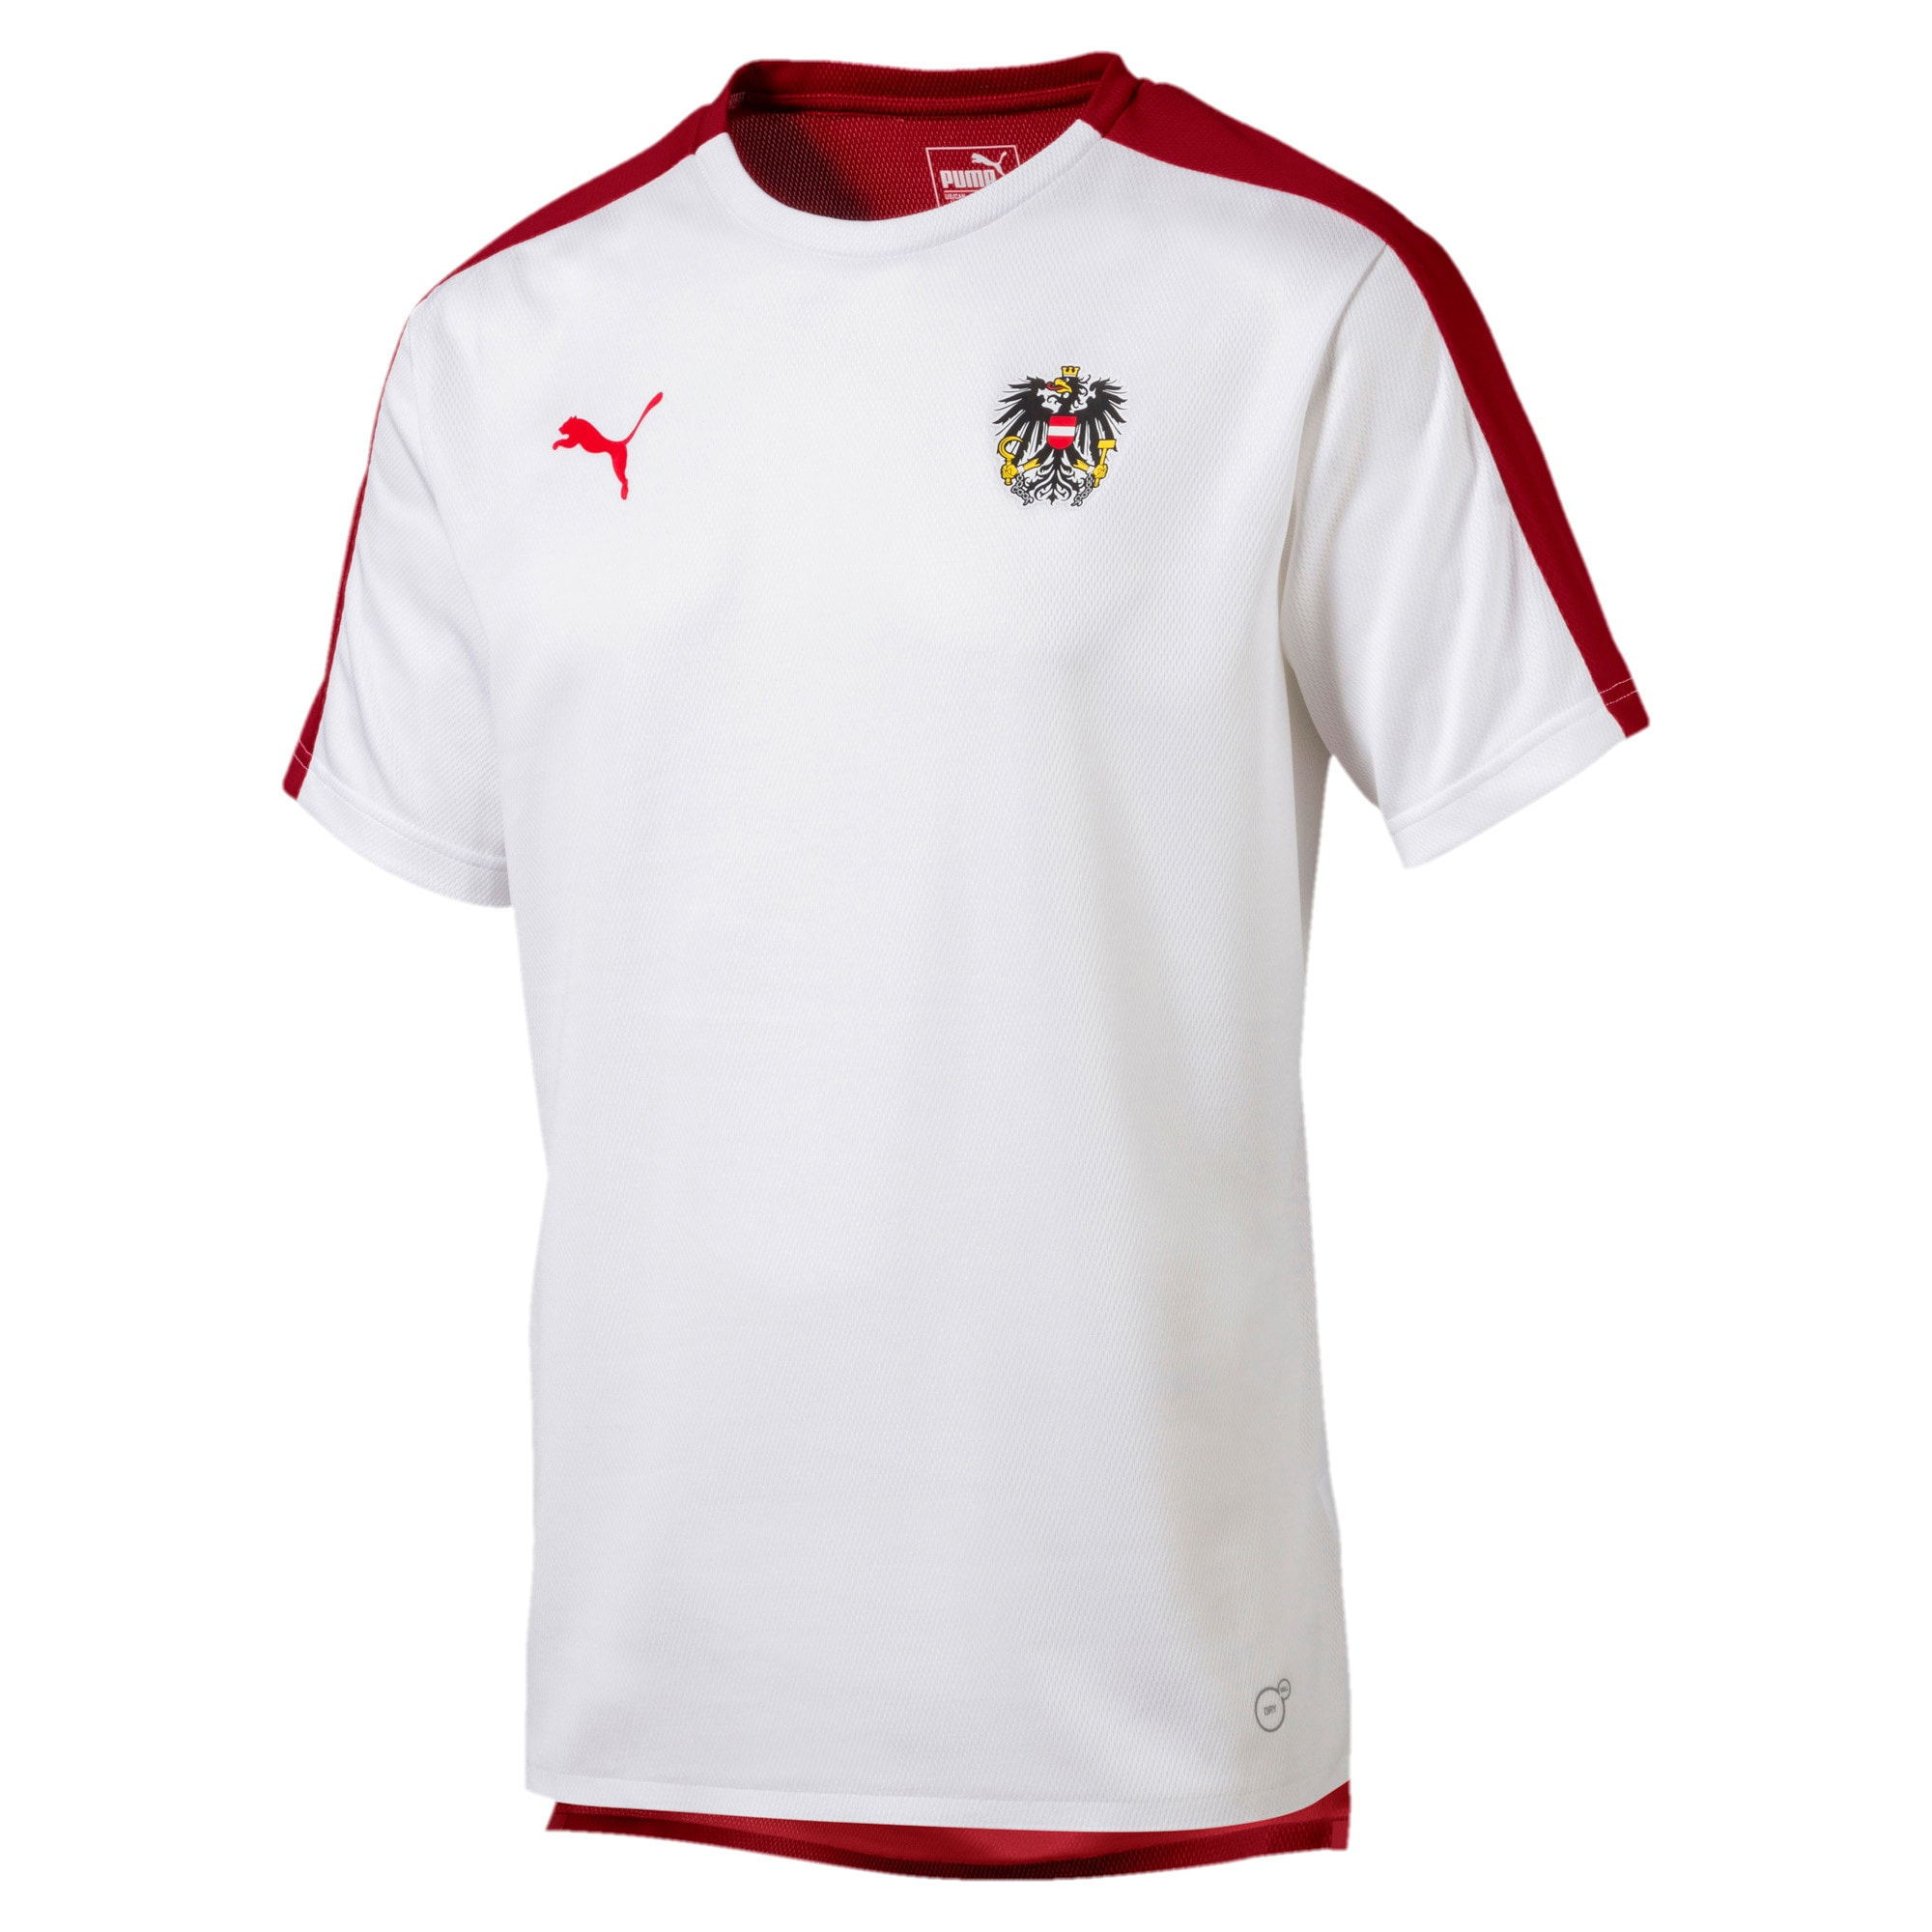 Thumbnail 1 of Austria Men's Stadium Jersey, Puma White-Red Dahlia, medium